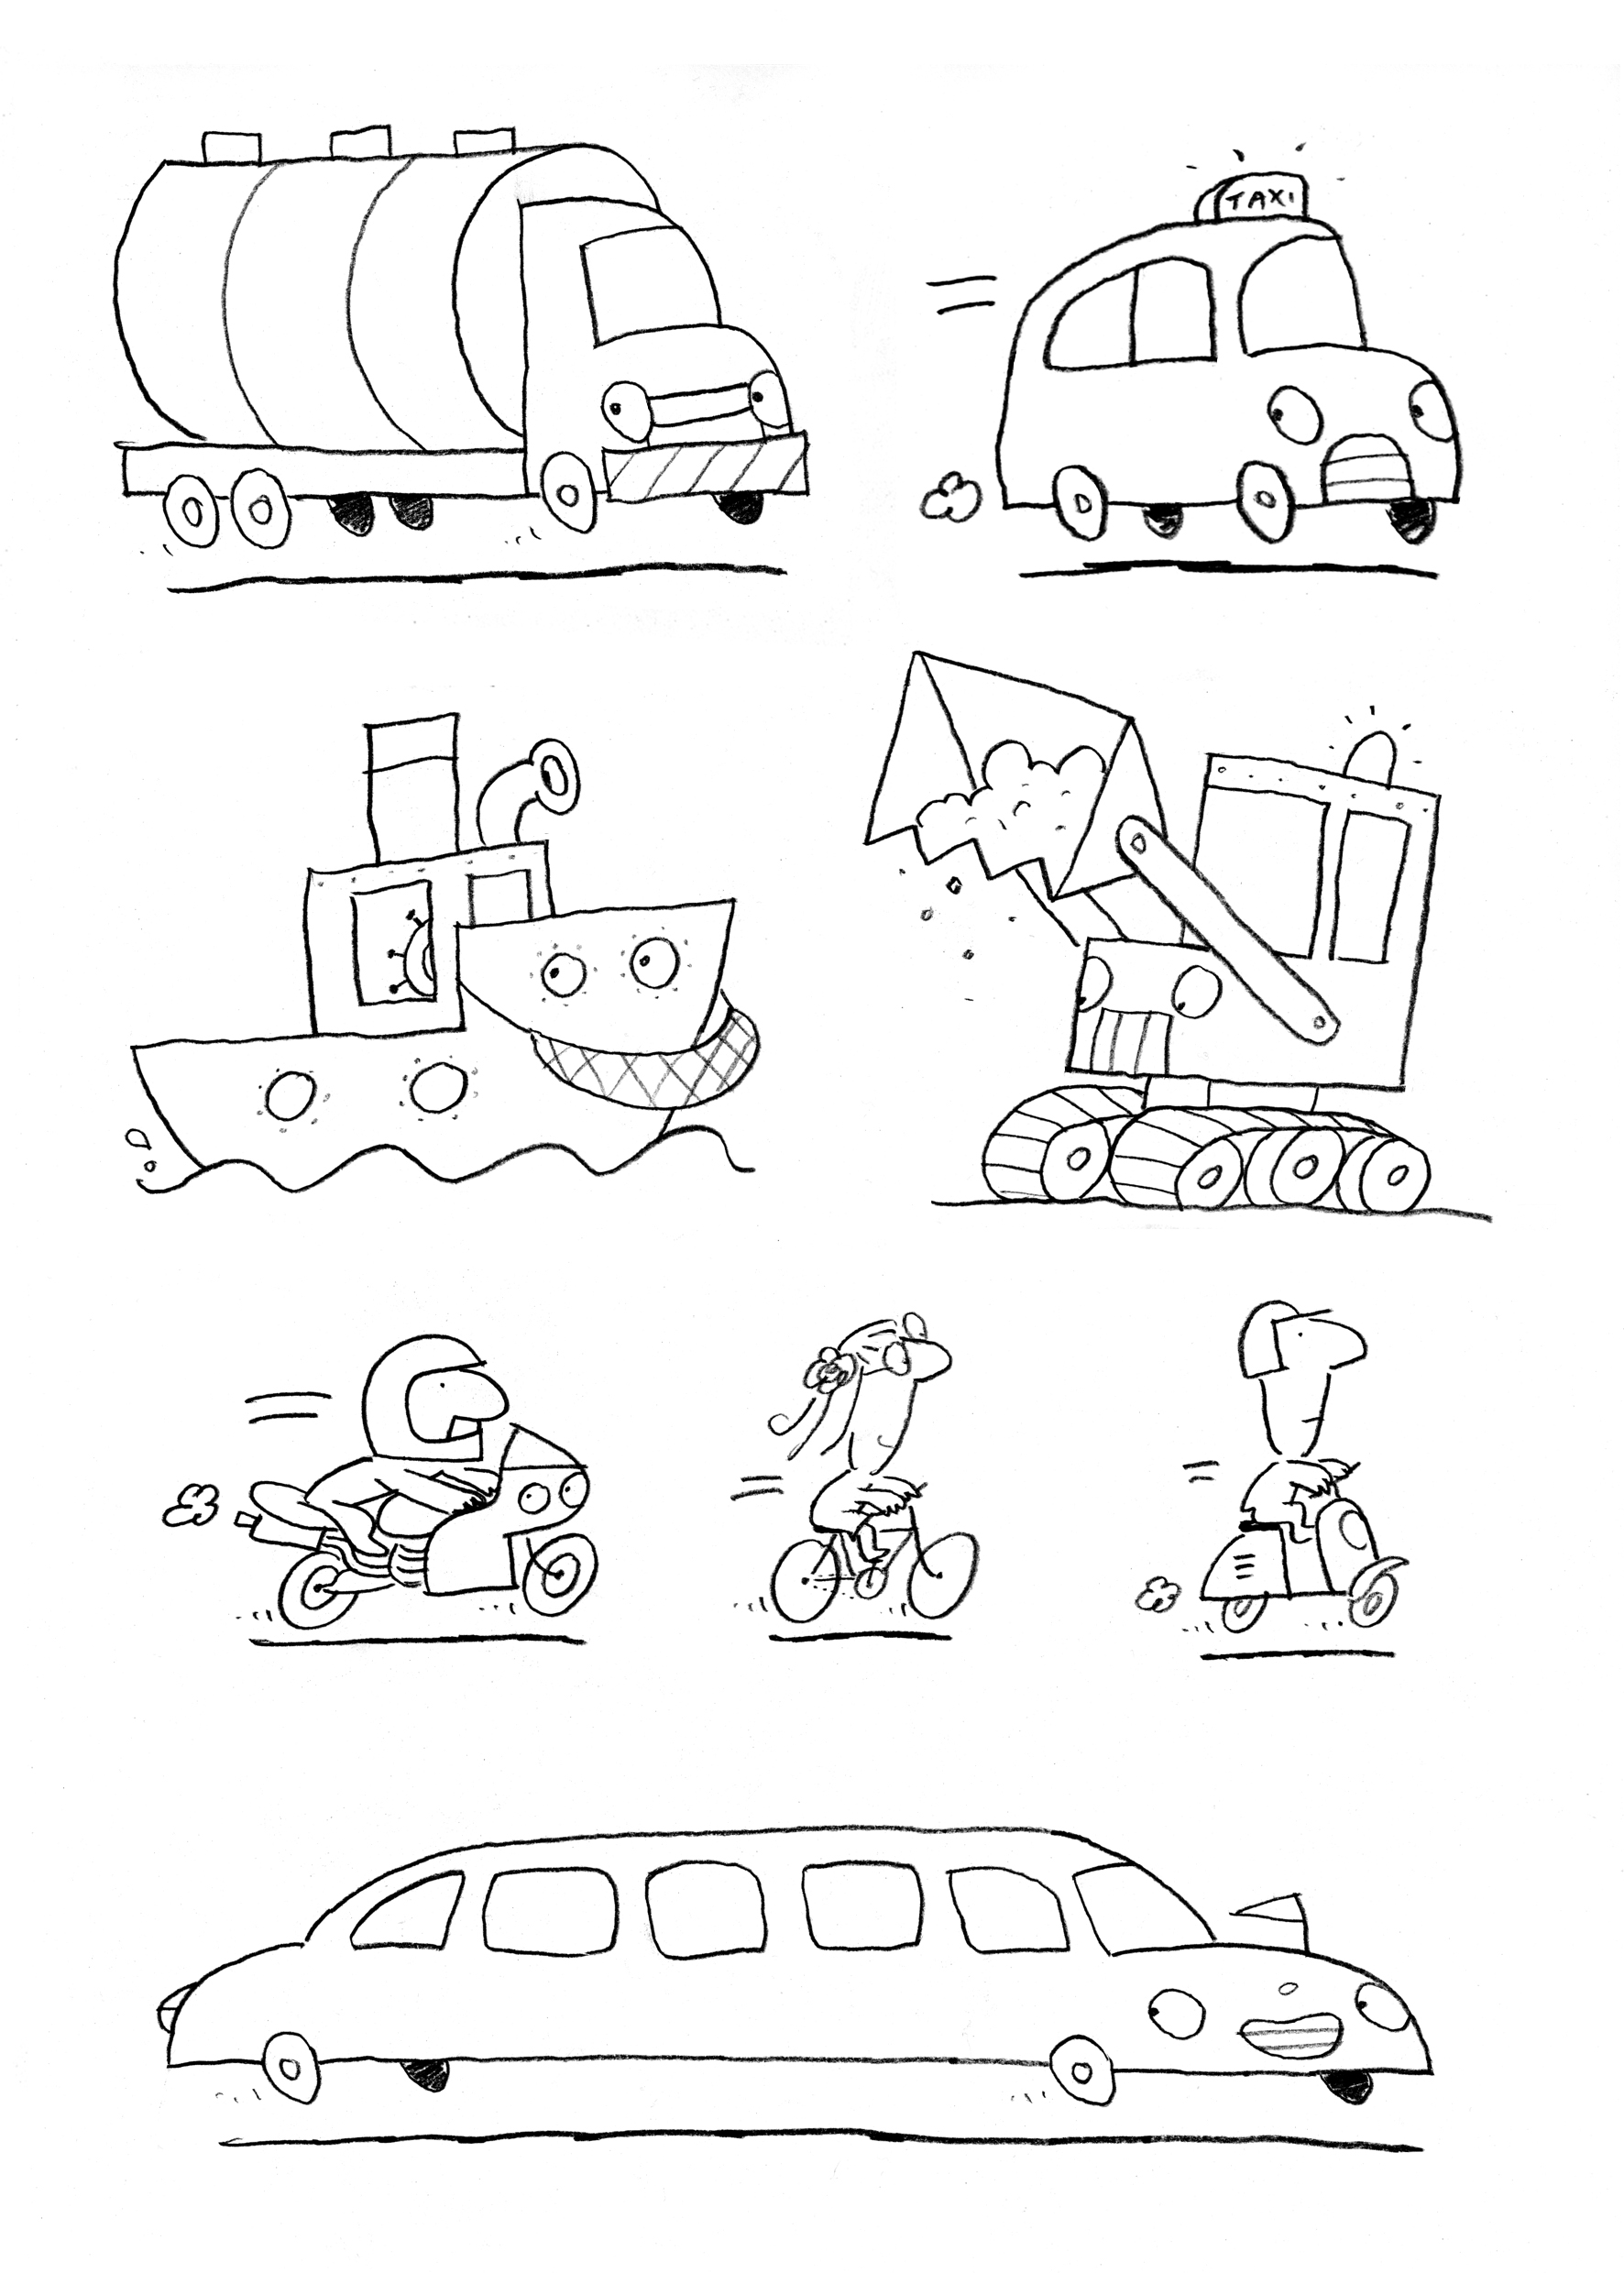 Vehicles-3 copy.jpg